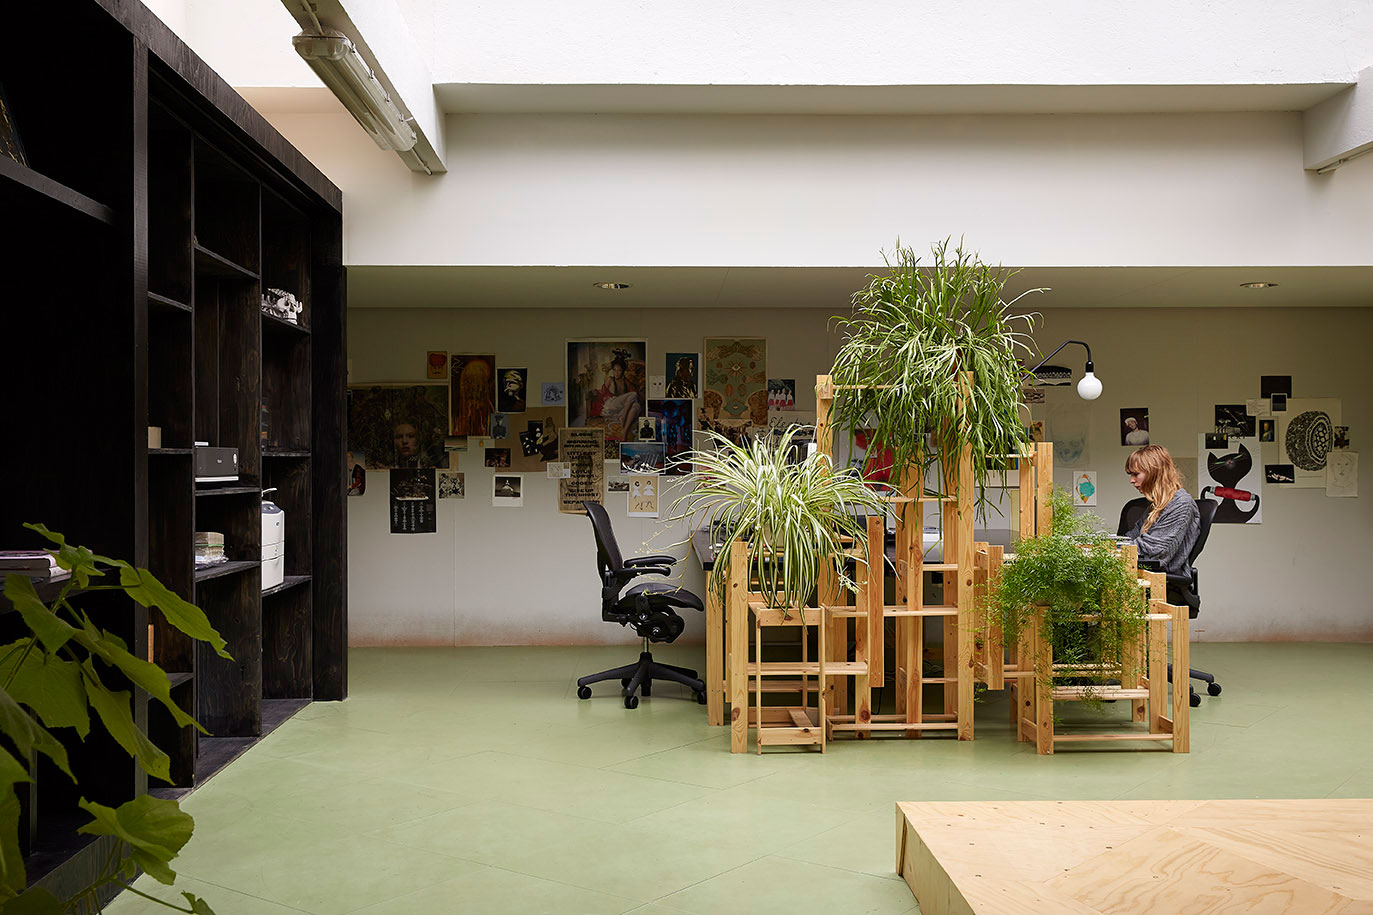 Office Zen Garden Random Studio Amsterdam Office Designed By X 43l Yellowtrace